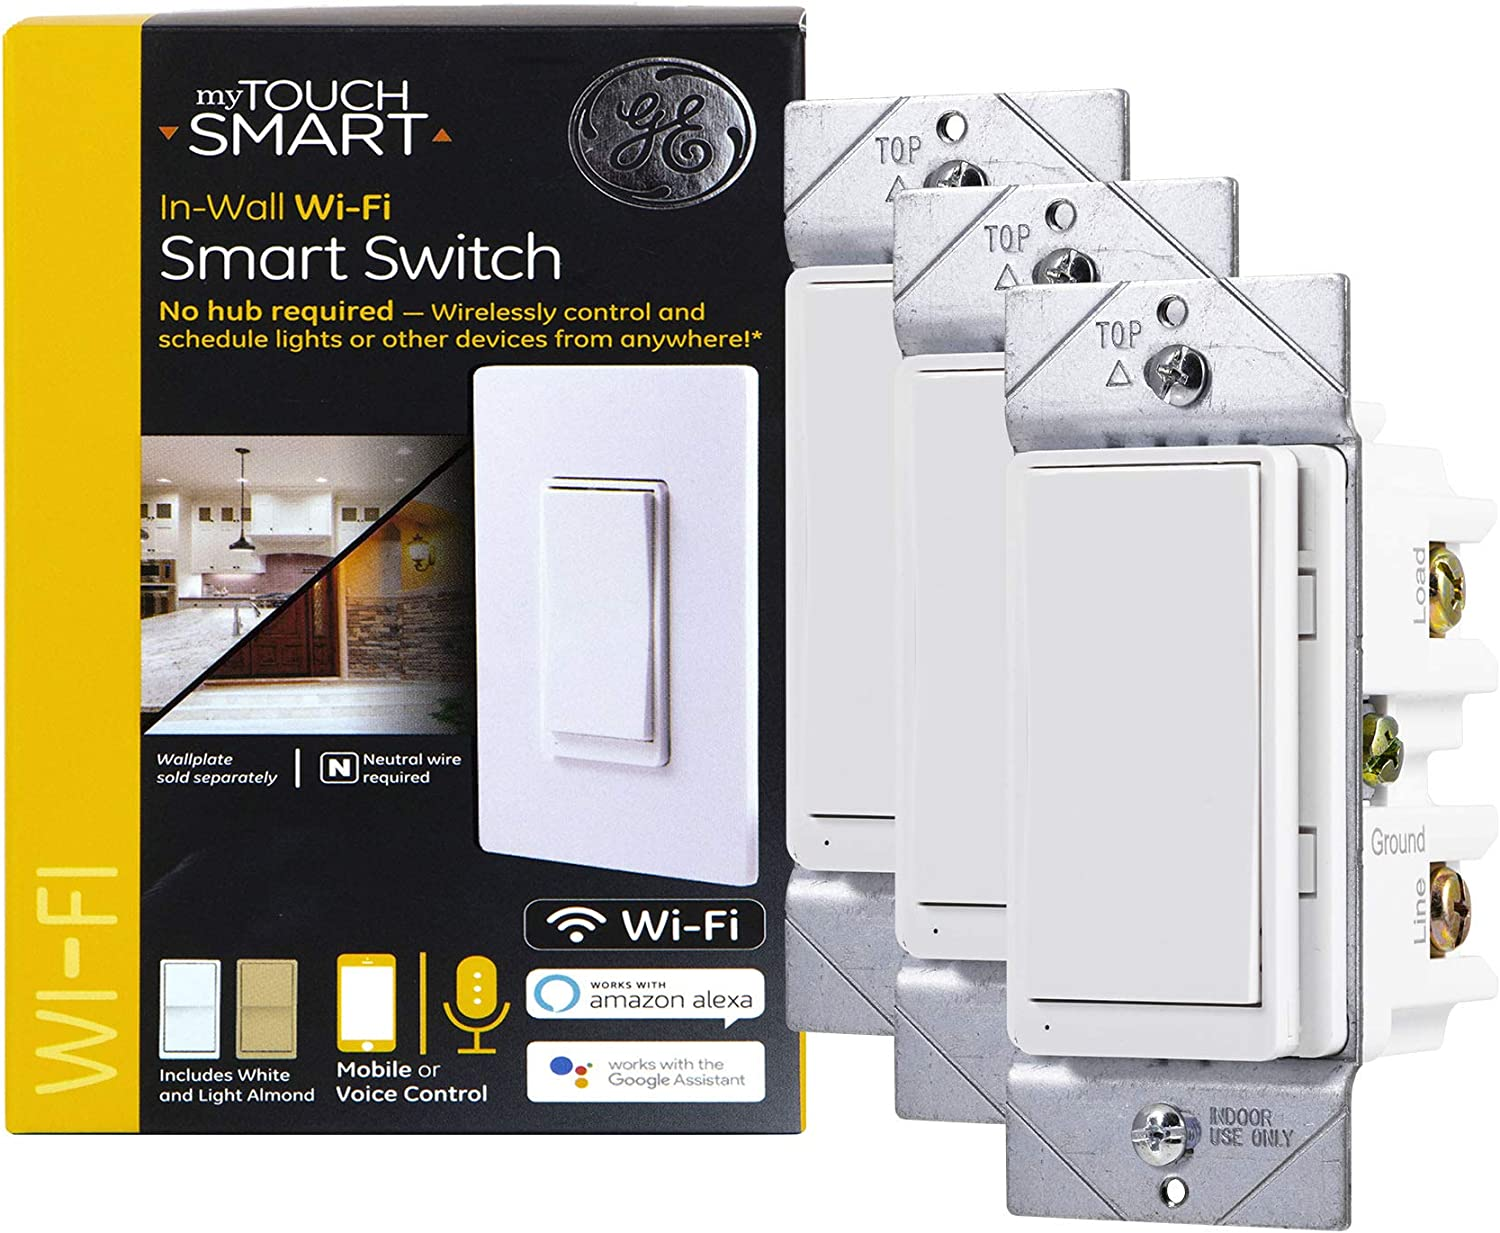 GE myTouchSmart WiFi Smart Light Switch 3-pack, 3-Way/Single Pole, Works with Alexa, Google Assistant, 2.4GHz, No Hub Needed, Neutral Wire Required, White & Light Almond, 47761